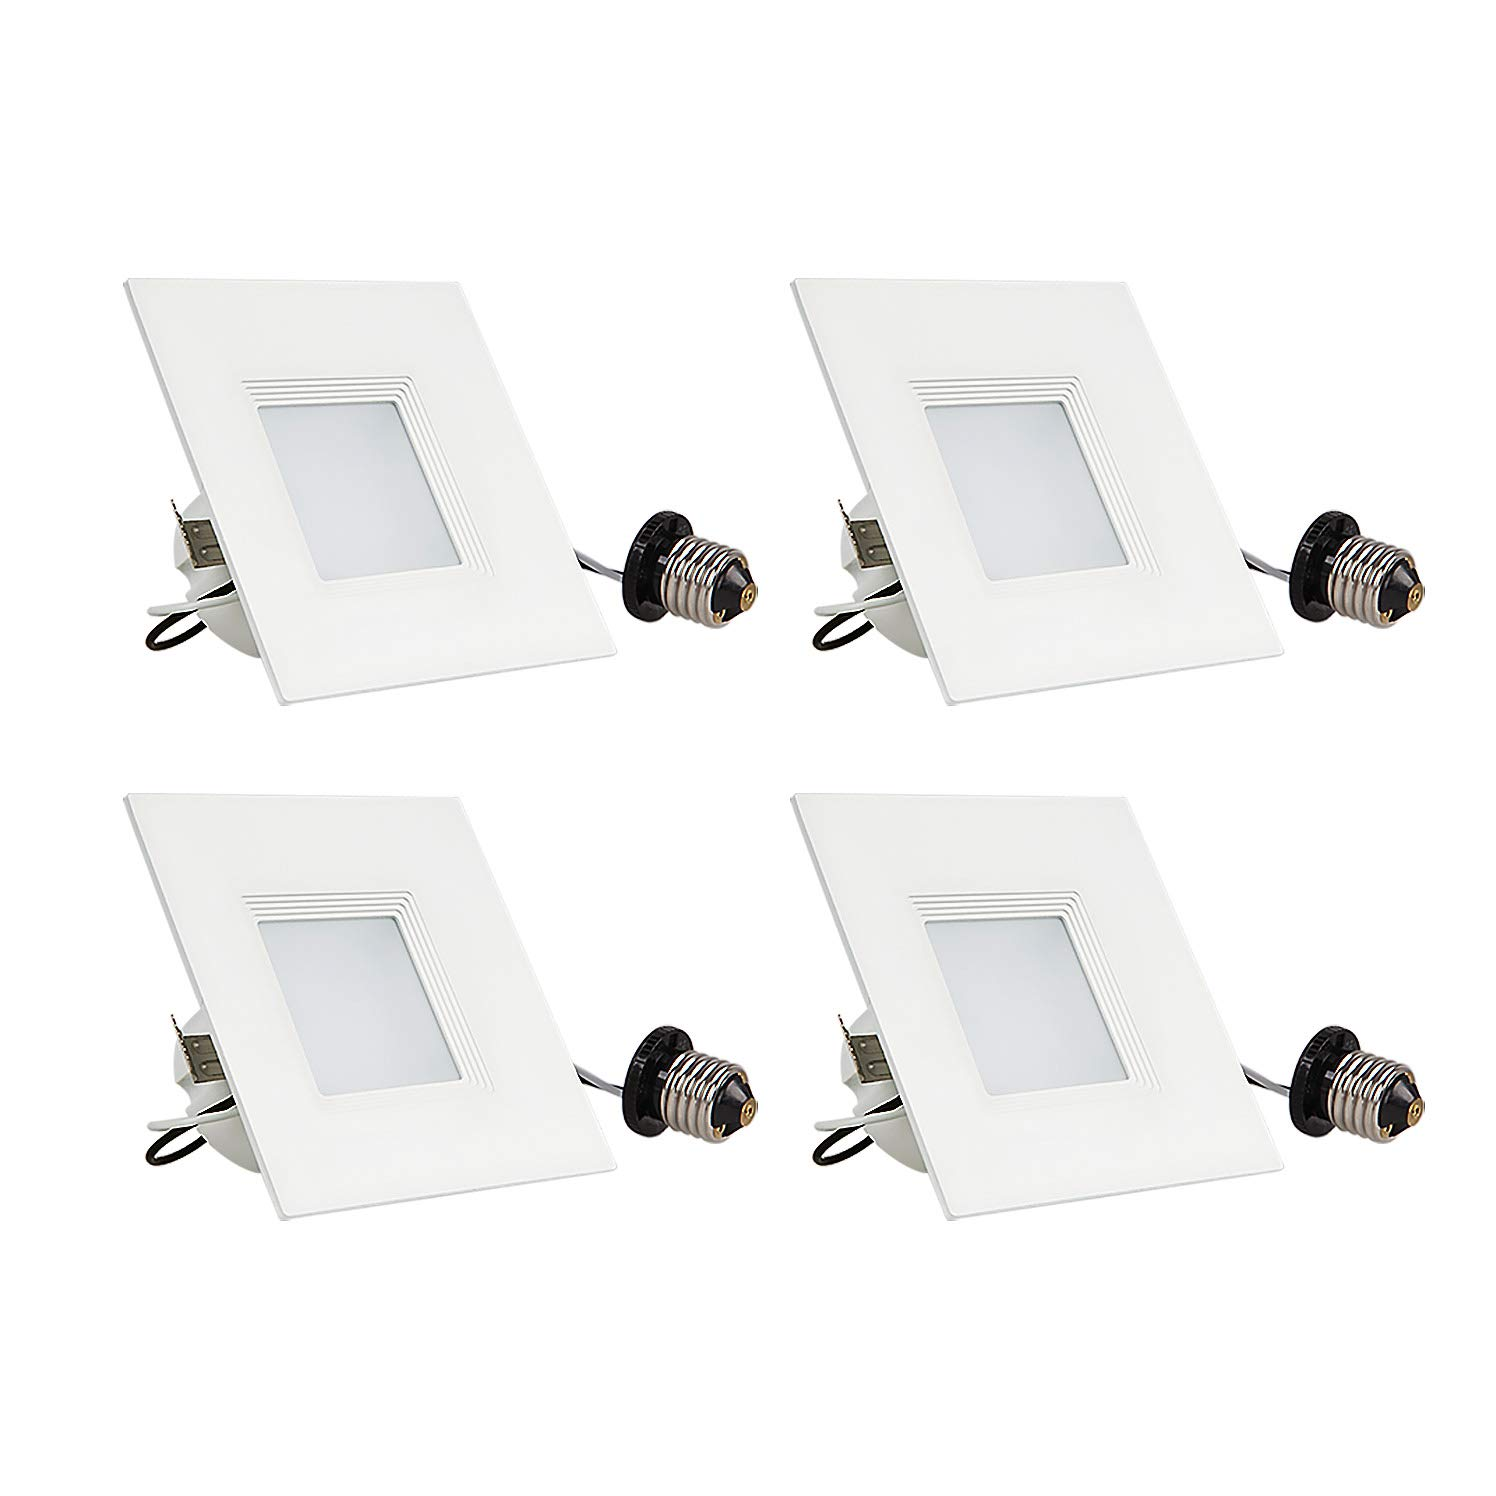 OSTWIN (4 Pack) 4 inch Dimmable LED Square Downlight, 10W (50W Replacement), Baffle Design, Retrofit Recessed Lighting, Can Light, LED Trim, 4000K (Bright Light), 650lm, Damp Rated, ETL & Energy Star